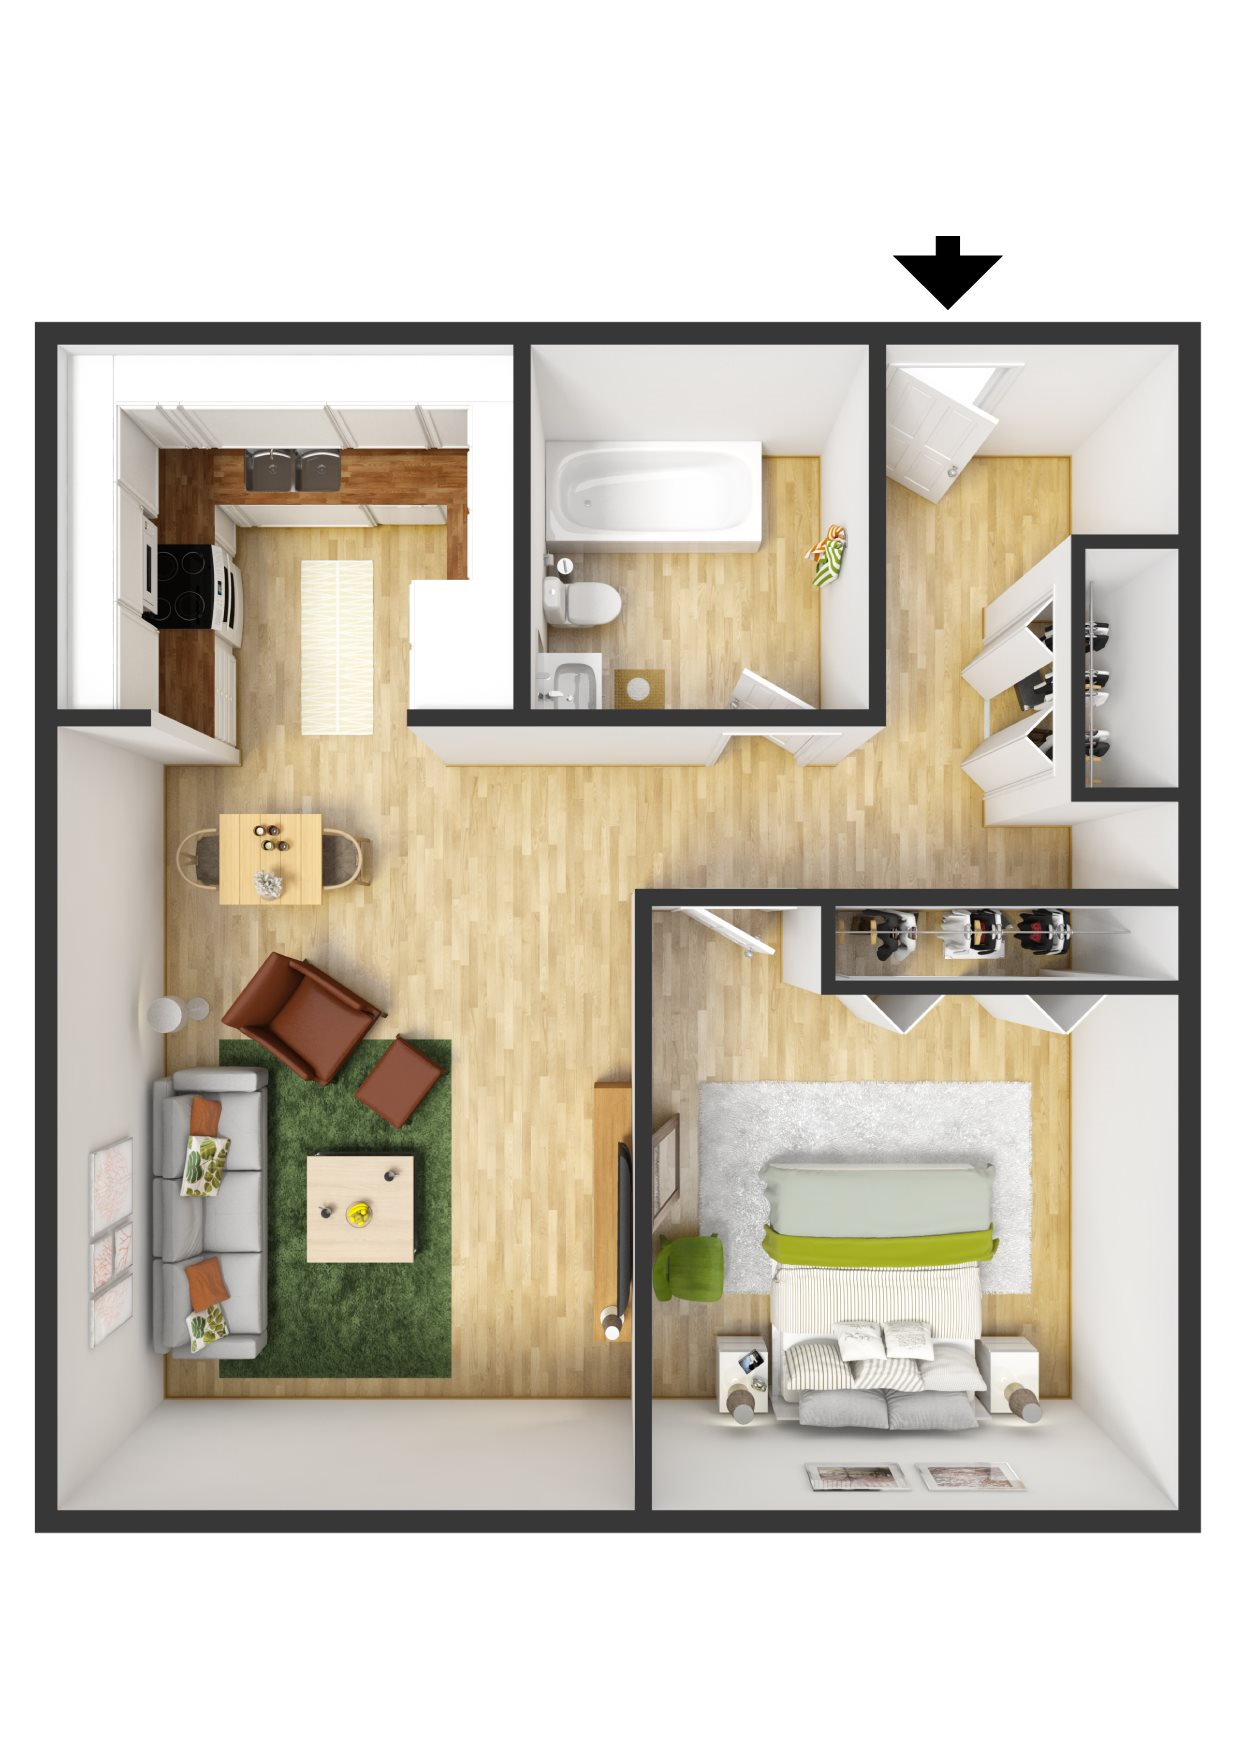 Floor plans of highland place apartments in grand rapids mi - One bedroom apartments grand rapids ...